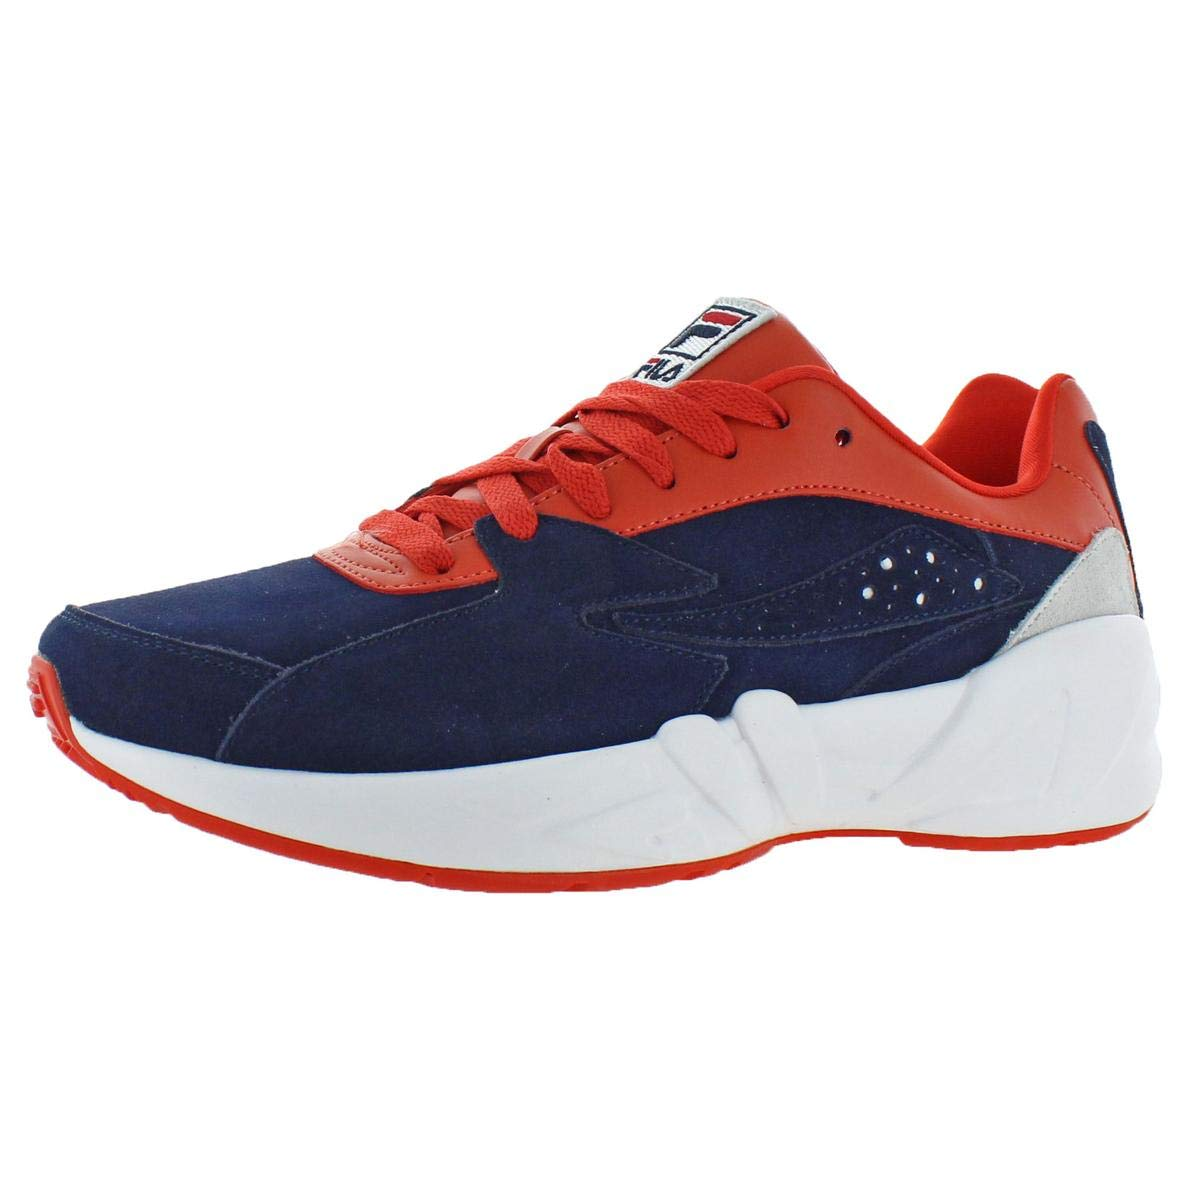 Nvy Org Fila Men's Mindblower Athletic Style Casual Sneaker